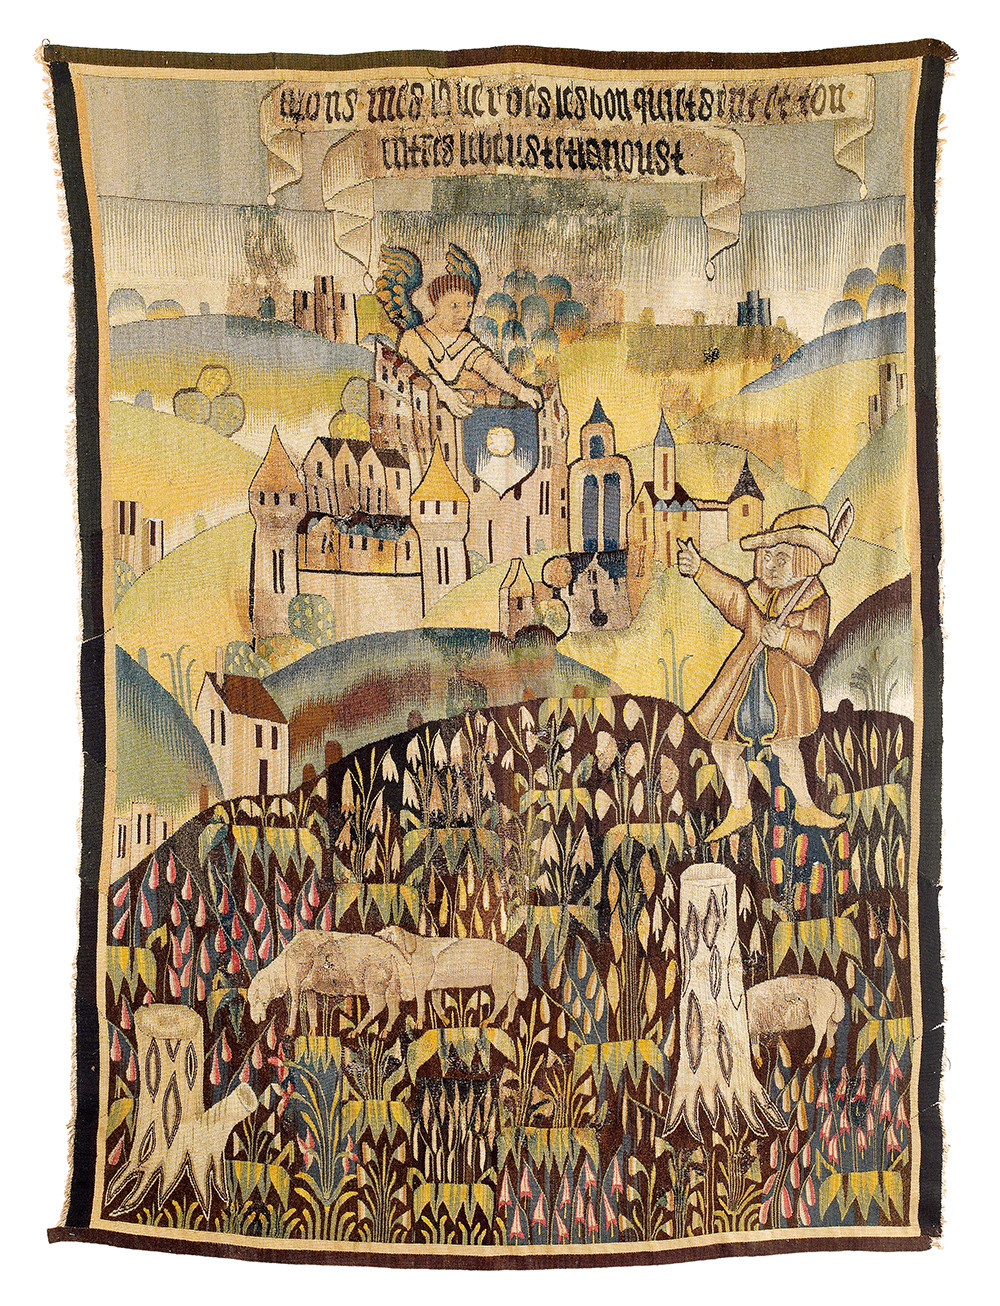 Tapisserie de la Marche, Tapestry, Central France, Limousin region, 16th century, 234 x 174 cm, estimate € 4,000